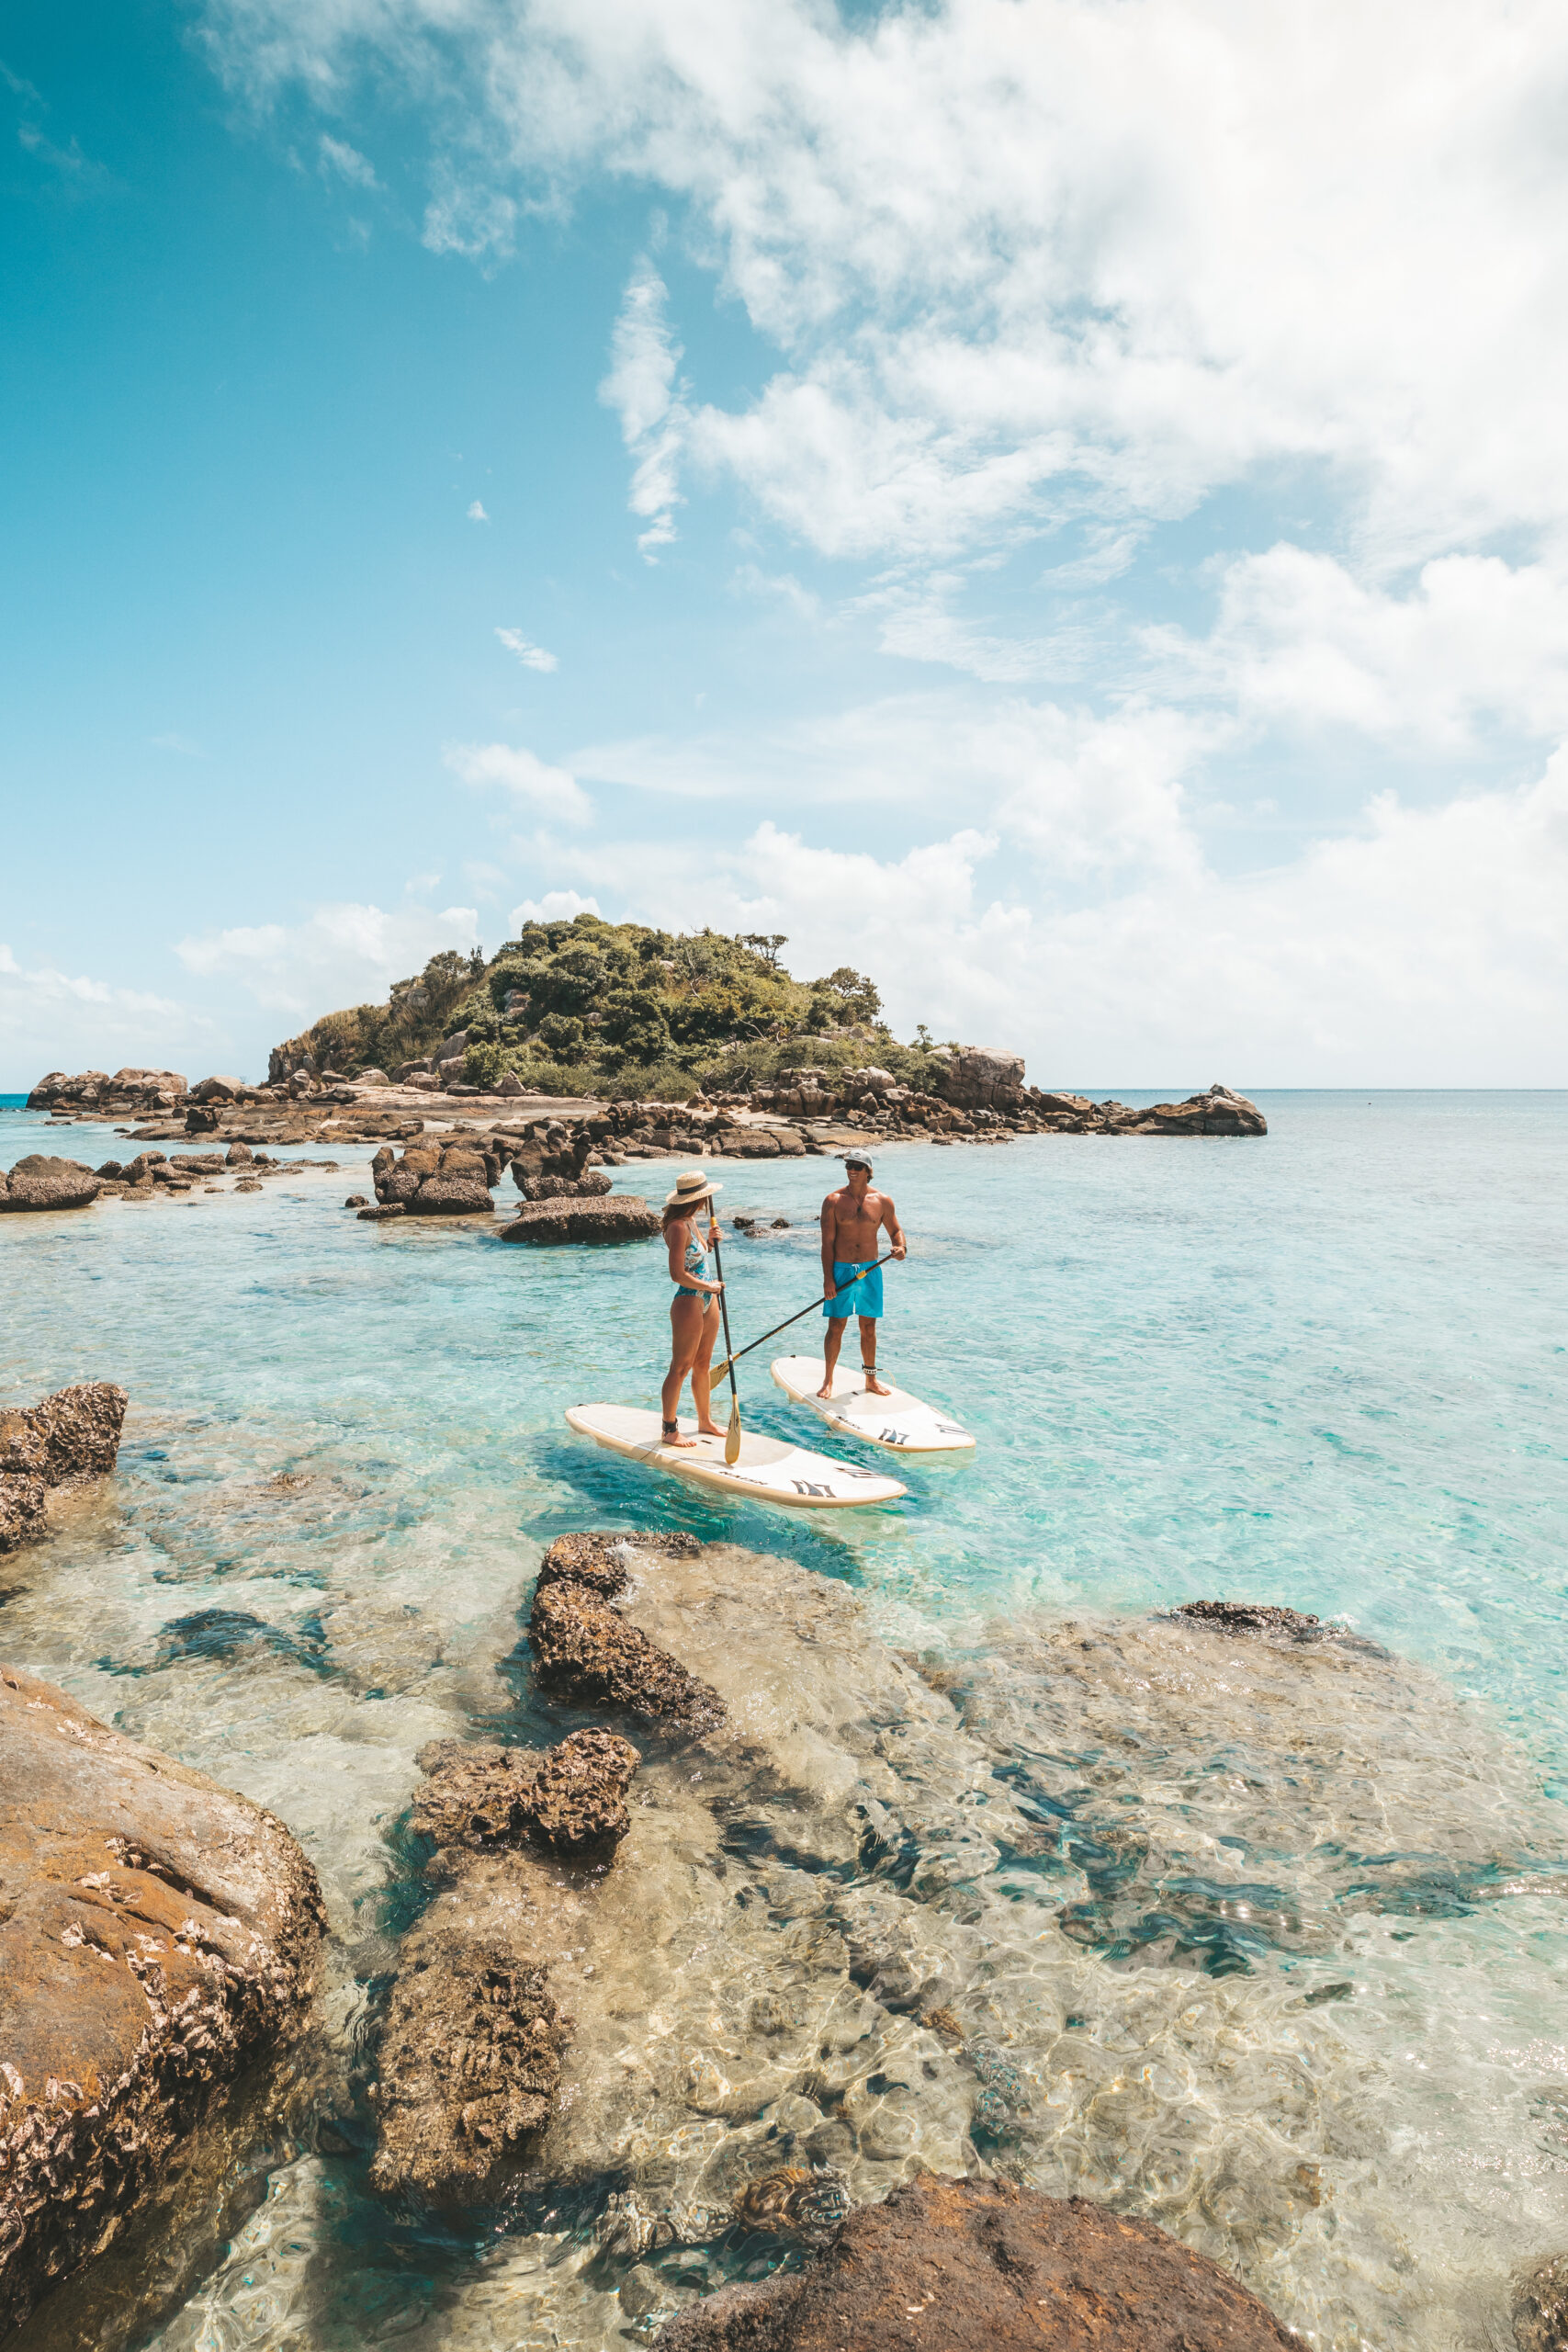 YOTSPACE superyacht voyages - Lizard Island - Stand Up Paddle Boarding